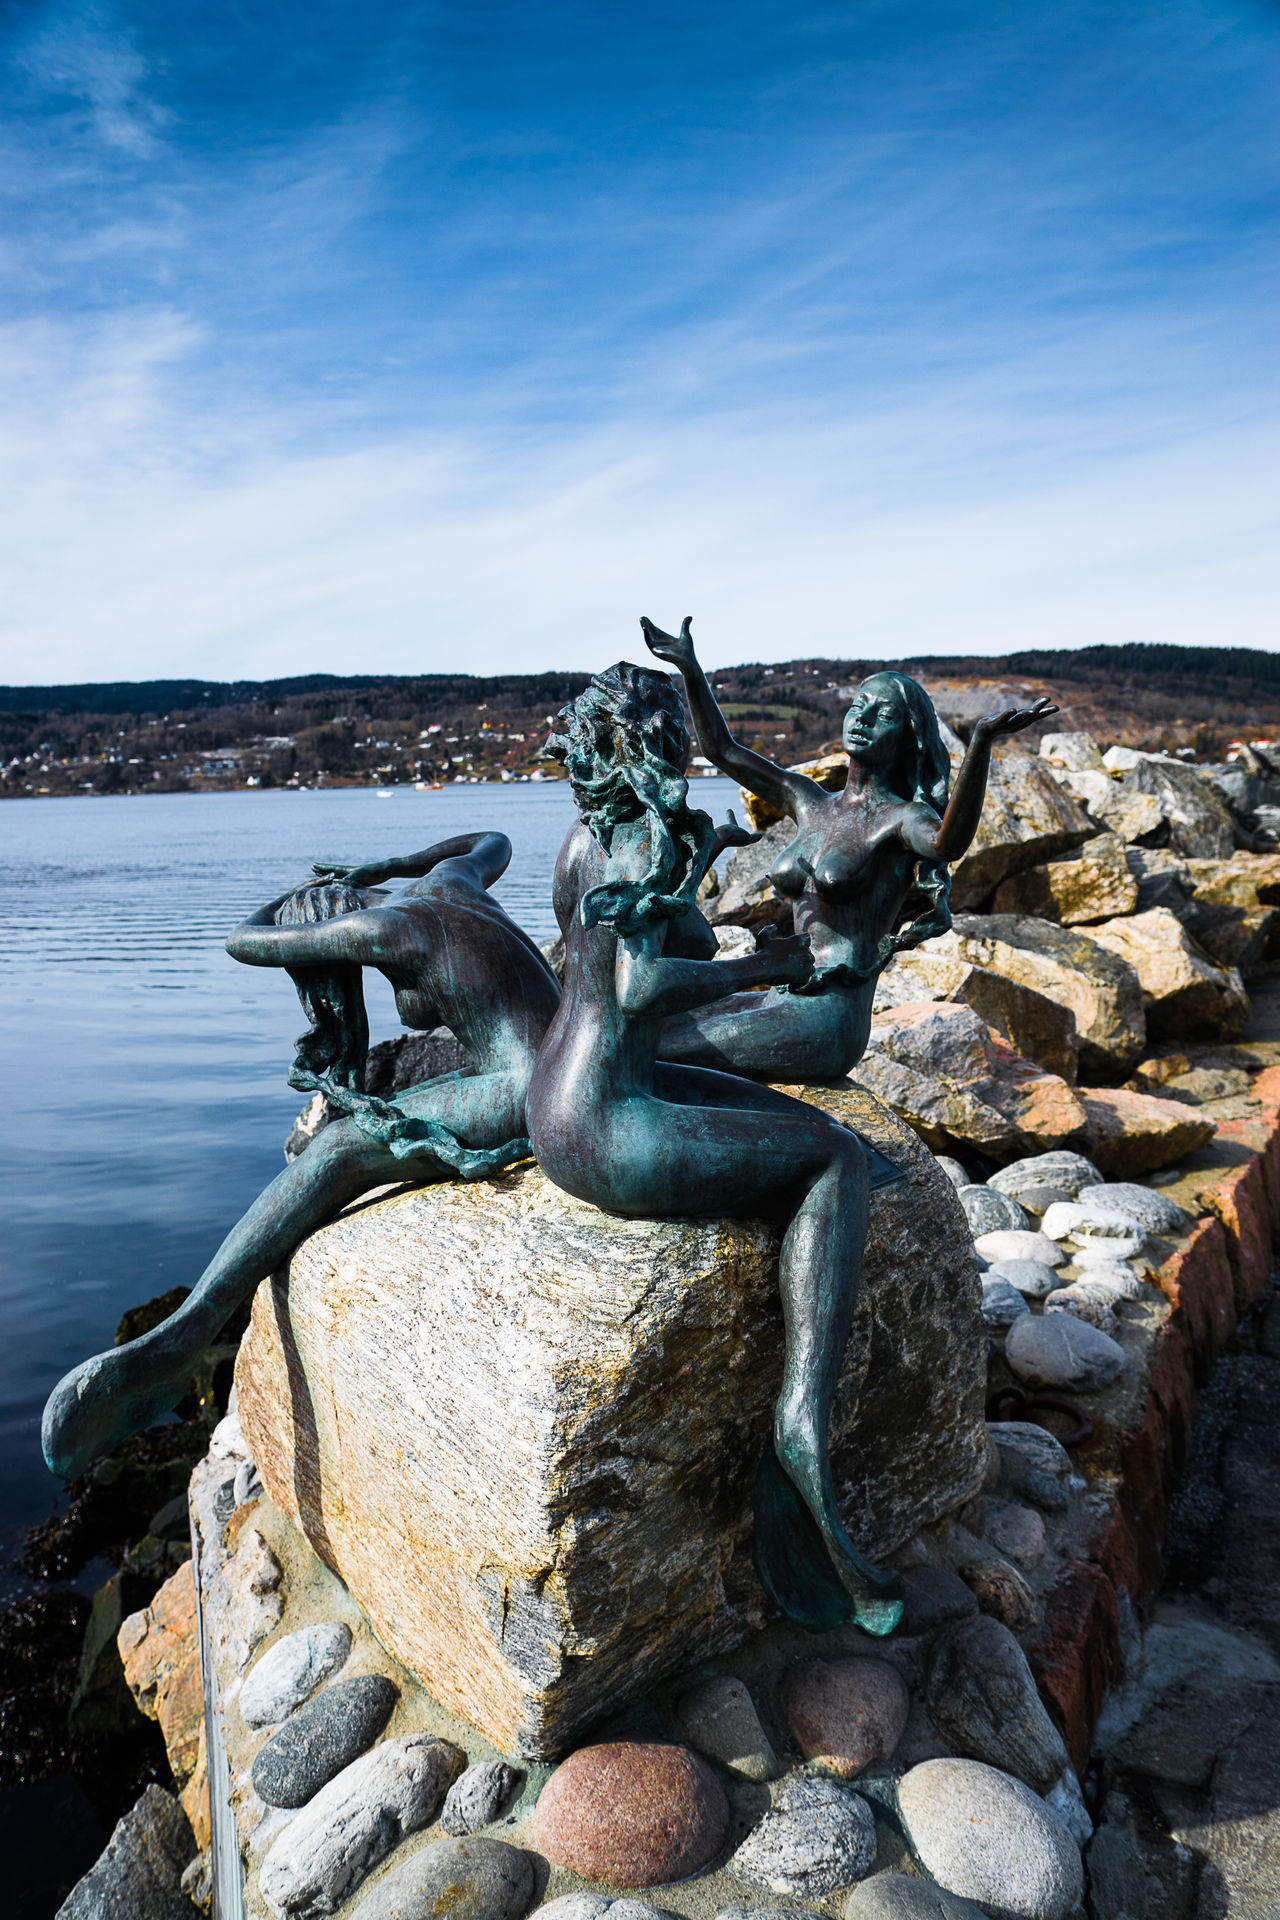 Day Drøbak Human Representation Mermaids Nature No People Outdoors Pebble Rock Rock - Object Scenics Sculpture Sea Sky Stack Stone Stone - Object Stone Material Sunlight Tranquil Scene Tranquility Travel Traveling Water